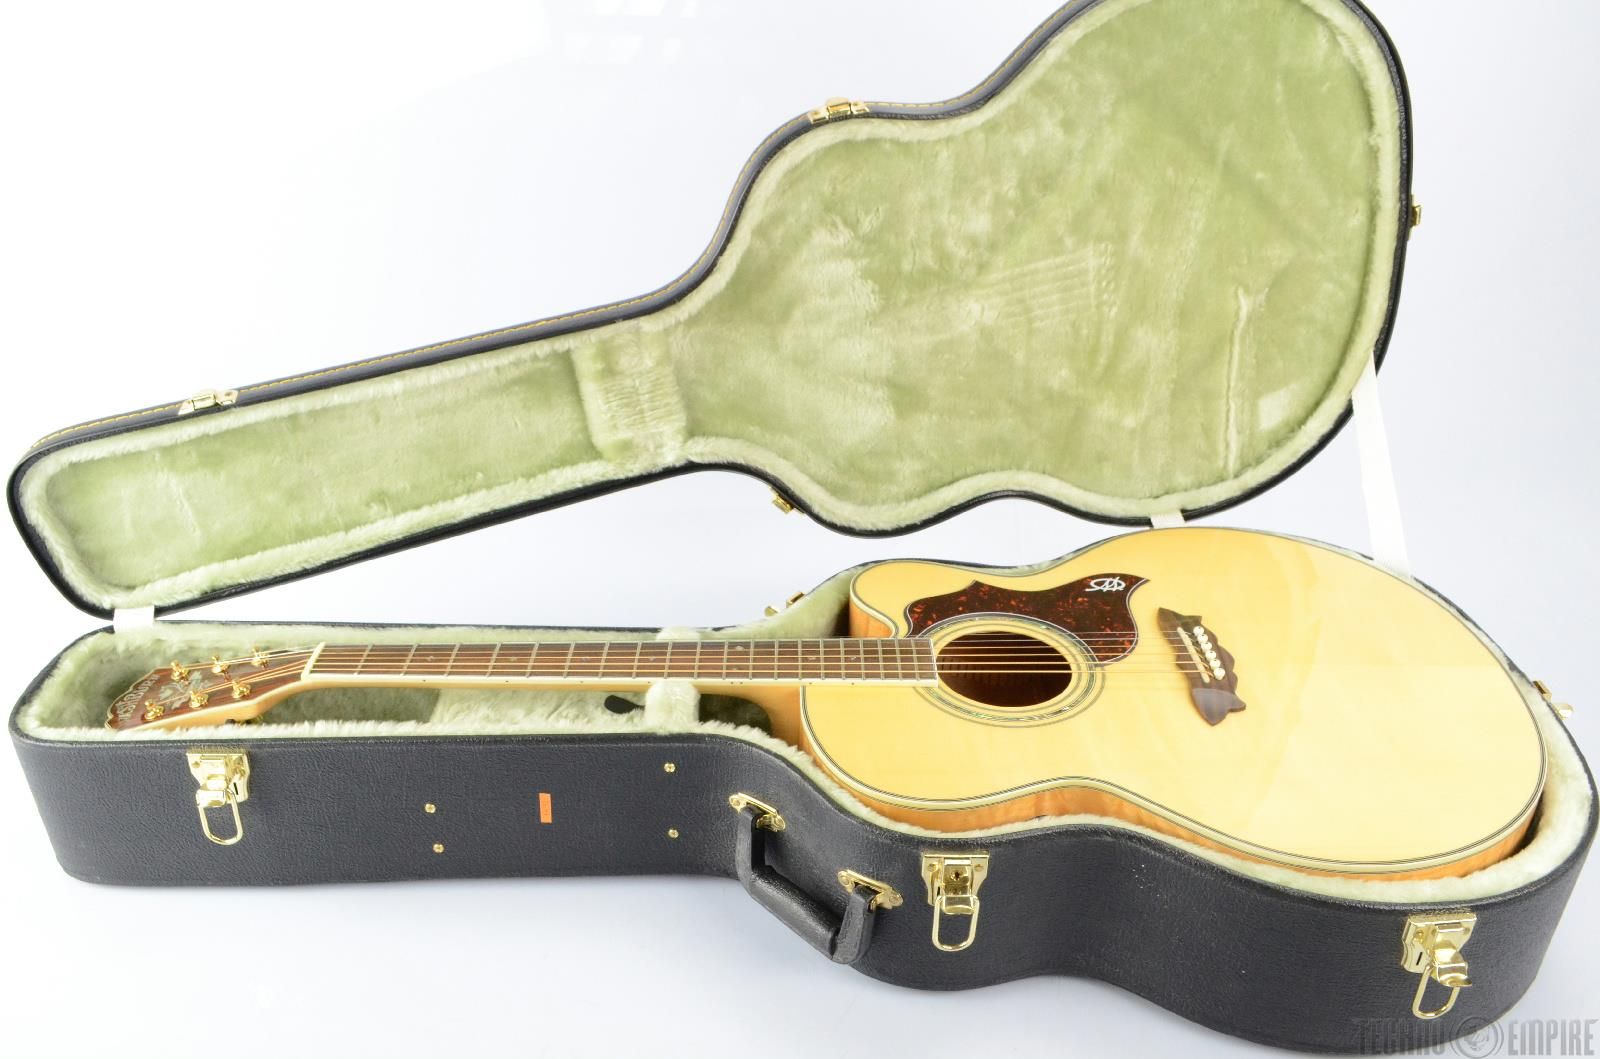 washburn guitars case strudy Need essay sample on marketing math case: washburn guitars we will write a custom essay sample specifically for you for only $ 1390 louis vuitton case study 1.